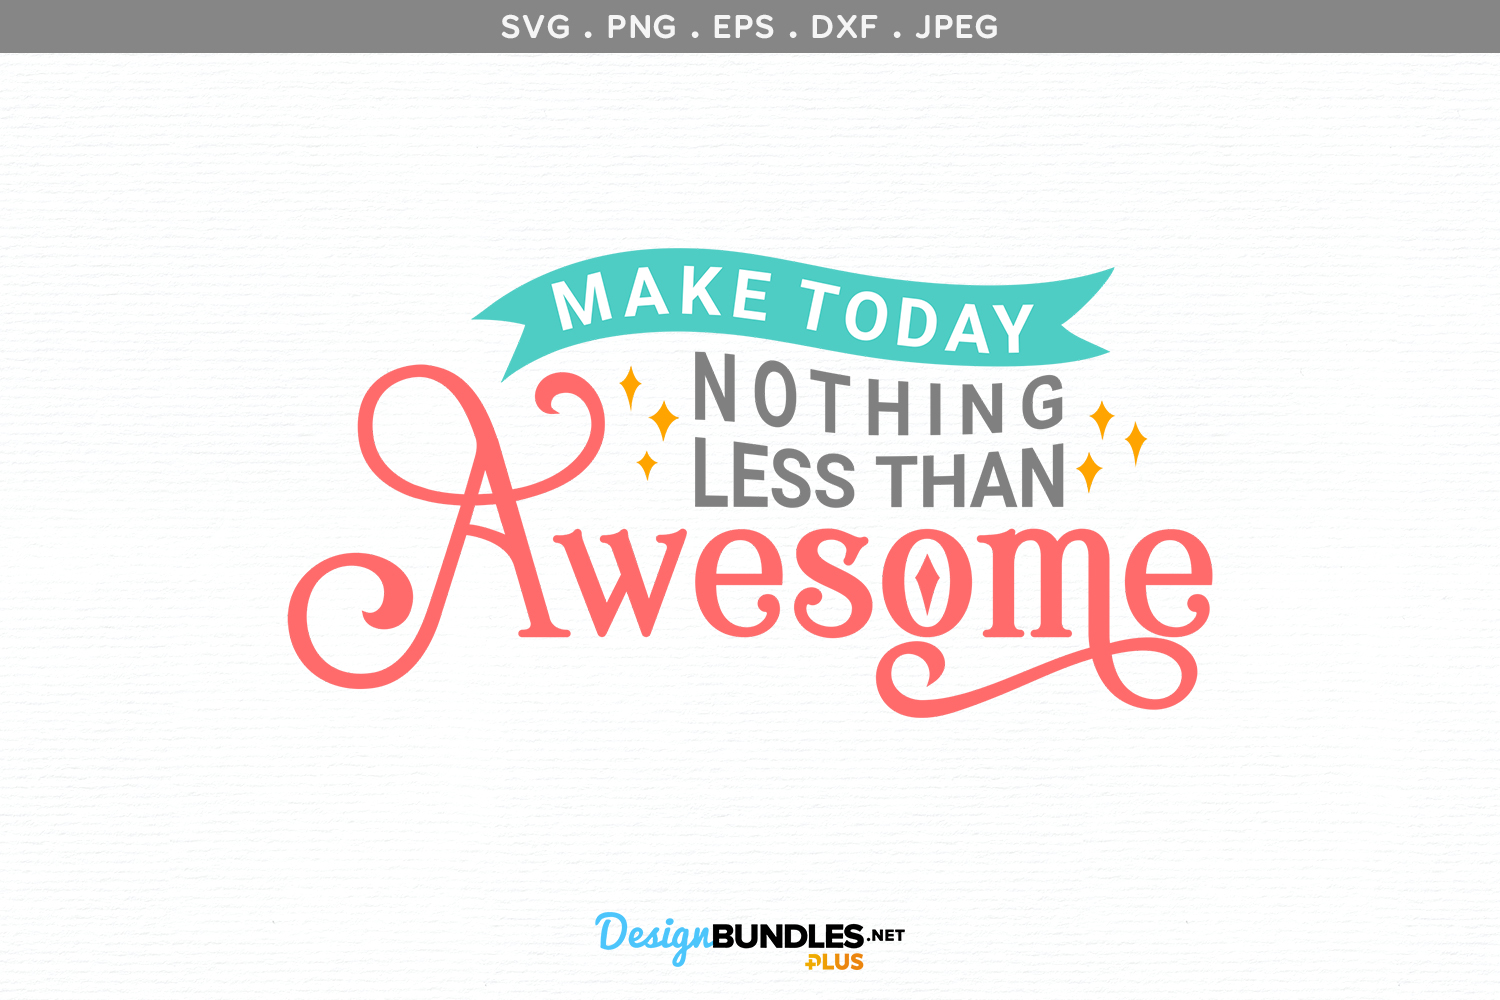 Make Today Nothing Less Than Awesome - svg cut file example image 2